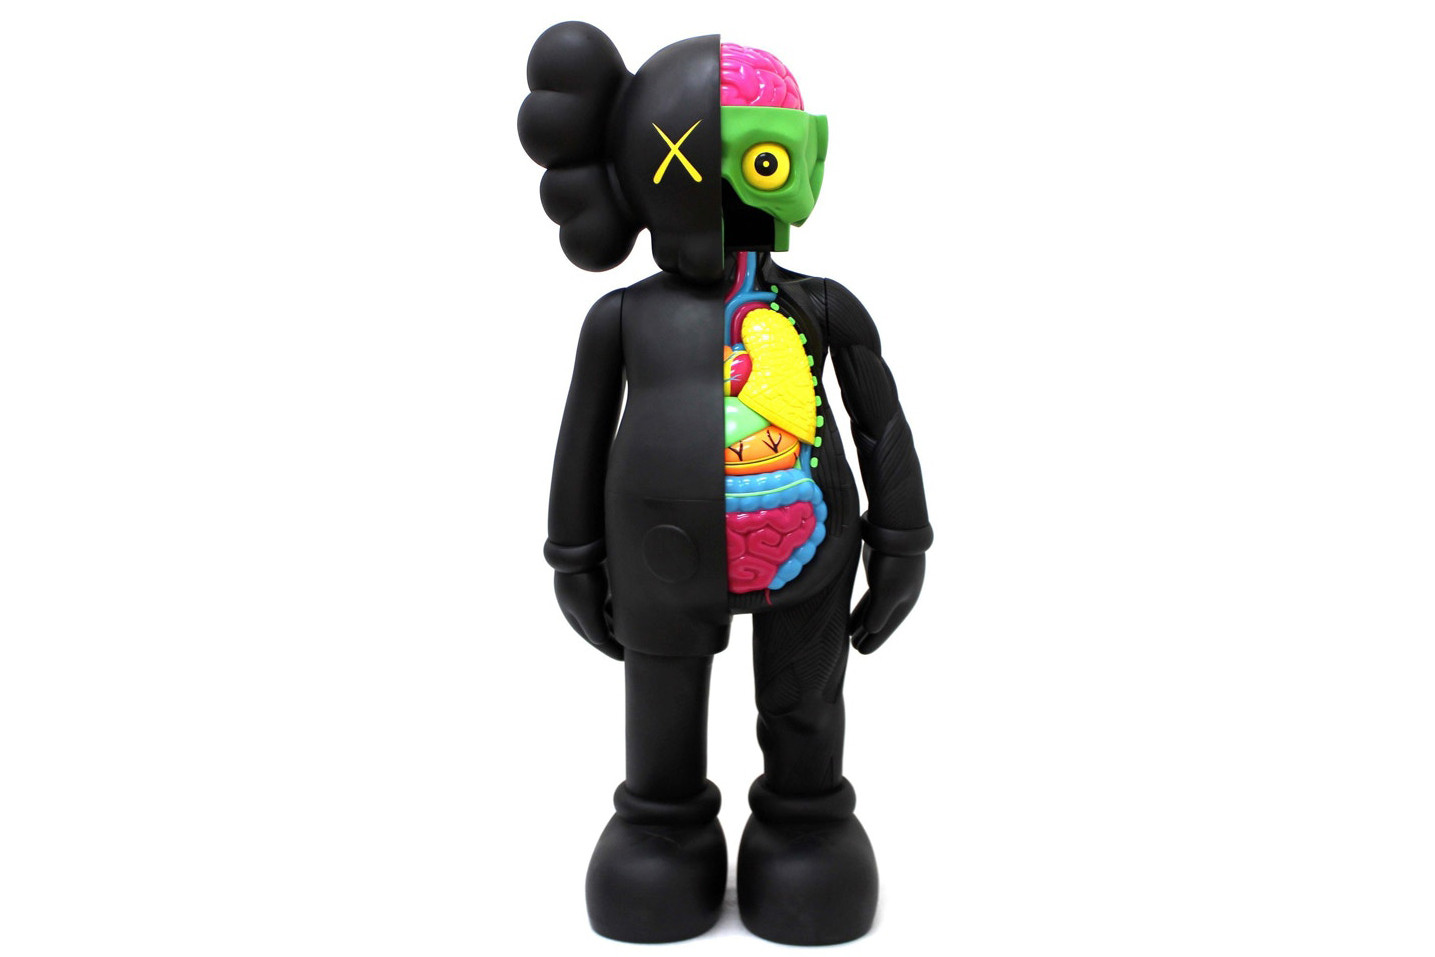 KAWS George Condo Daniel Arsham Rammellzee Koicho Sato Paddle8 Phillips Auction Exhibition